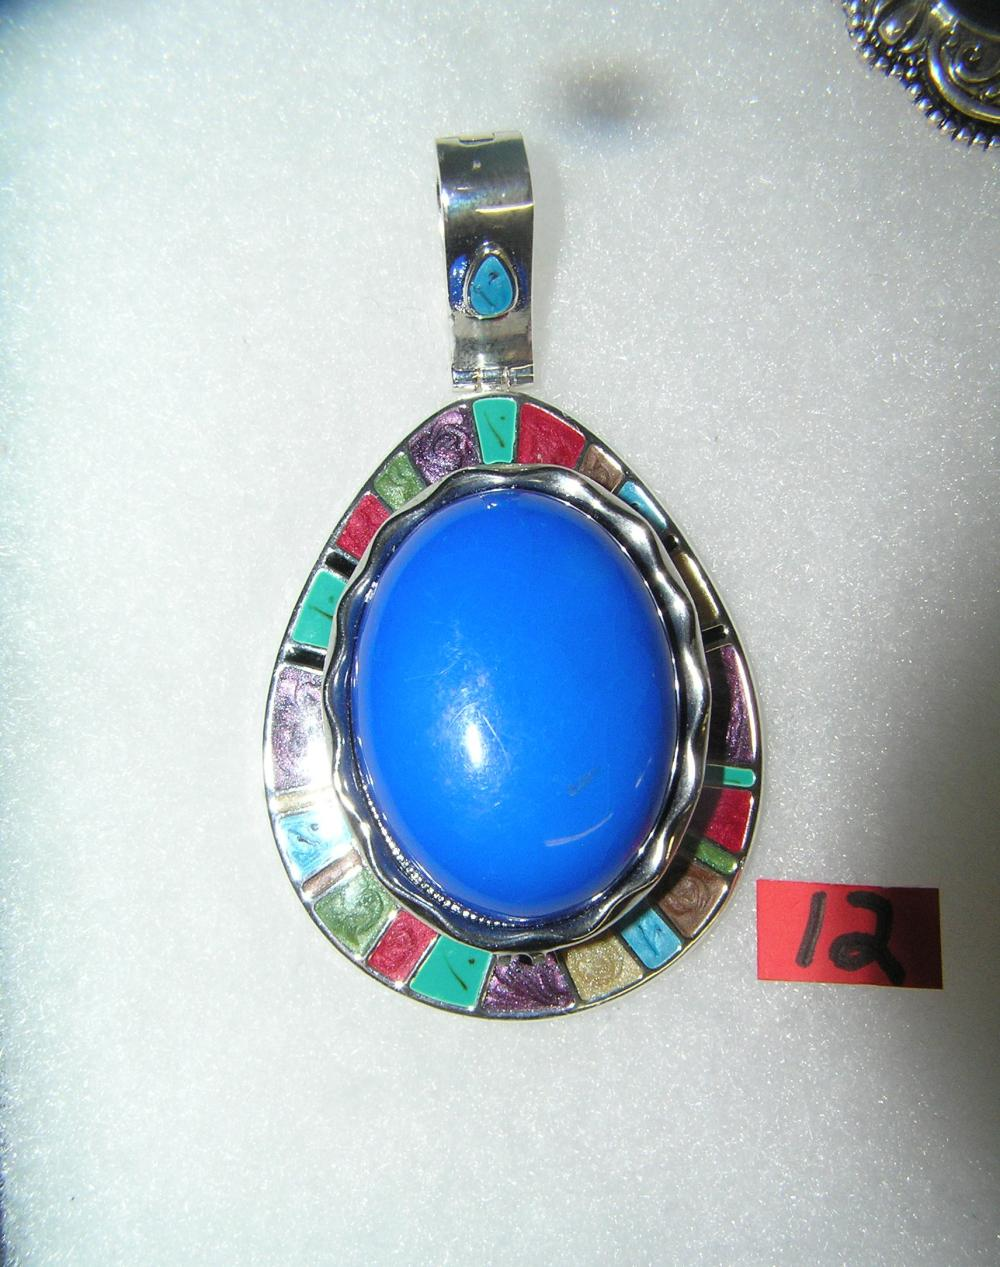 VINTAGE NECKLACE PENDANT WITH LARGE BLUE STONE